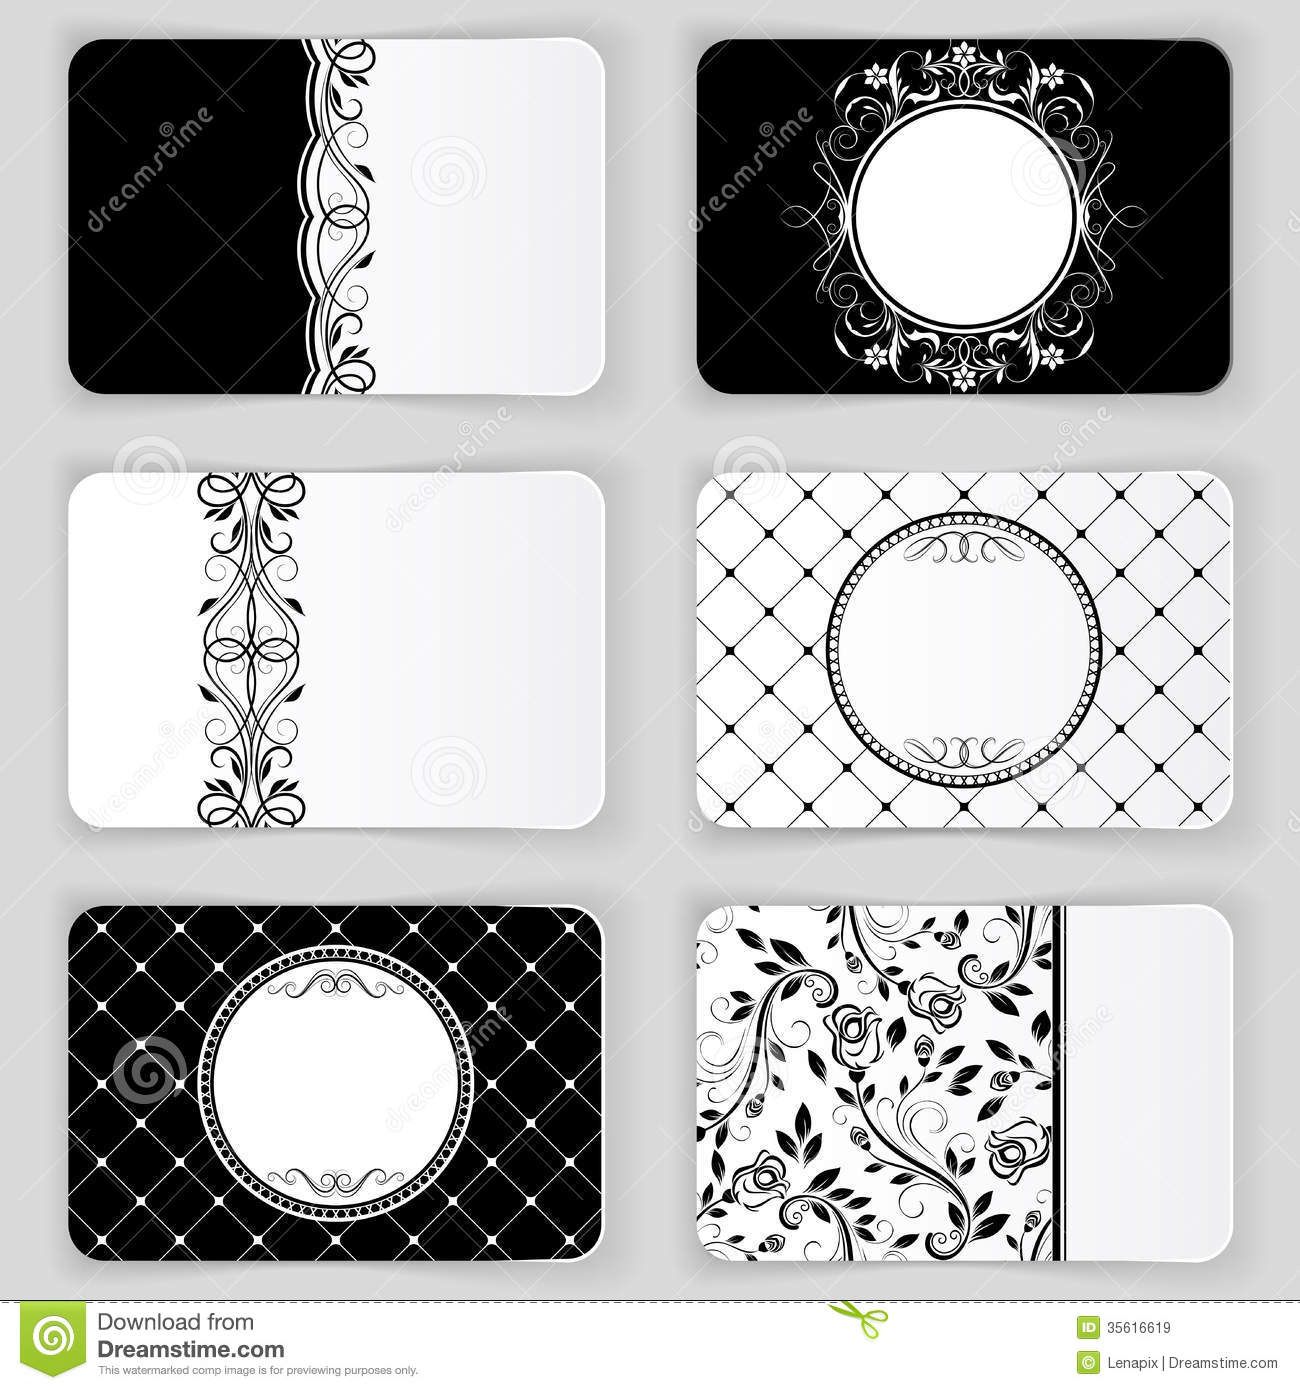 Black and white card template reheart